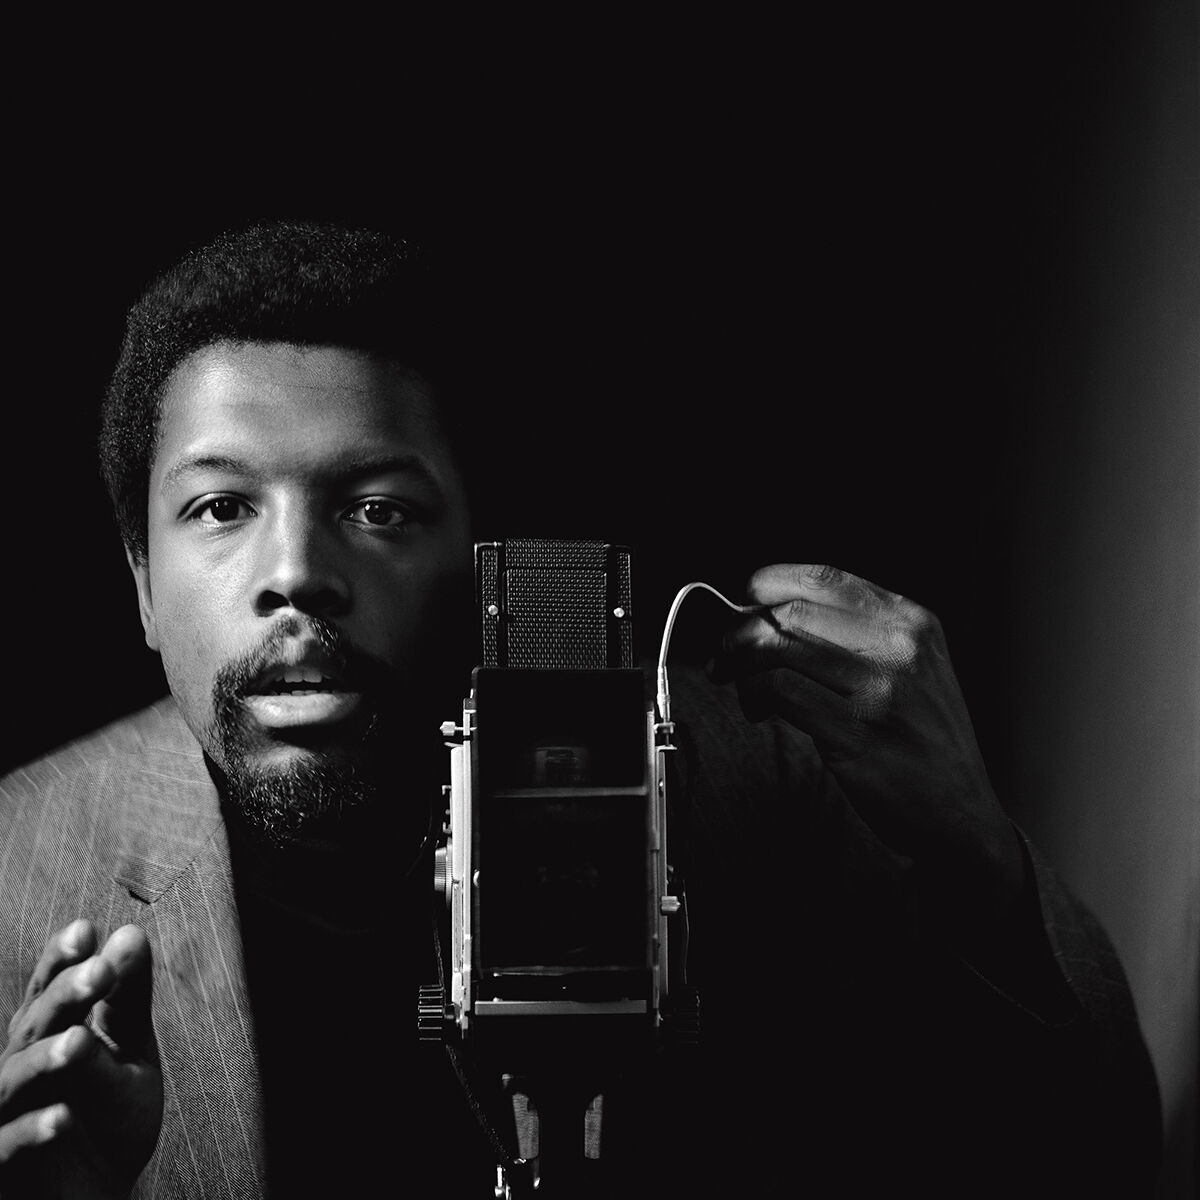 Kwame Brathwaite, Self-portrait, African Jazz-Art Society & Studios (AJASS), Harlem, ca. 1964, from Kwame Brathwaite: Black Is Beautiful, Aperture, 2019. © Kwame Brathwaite.